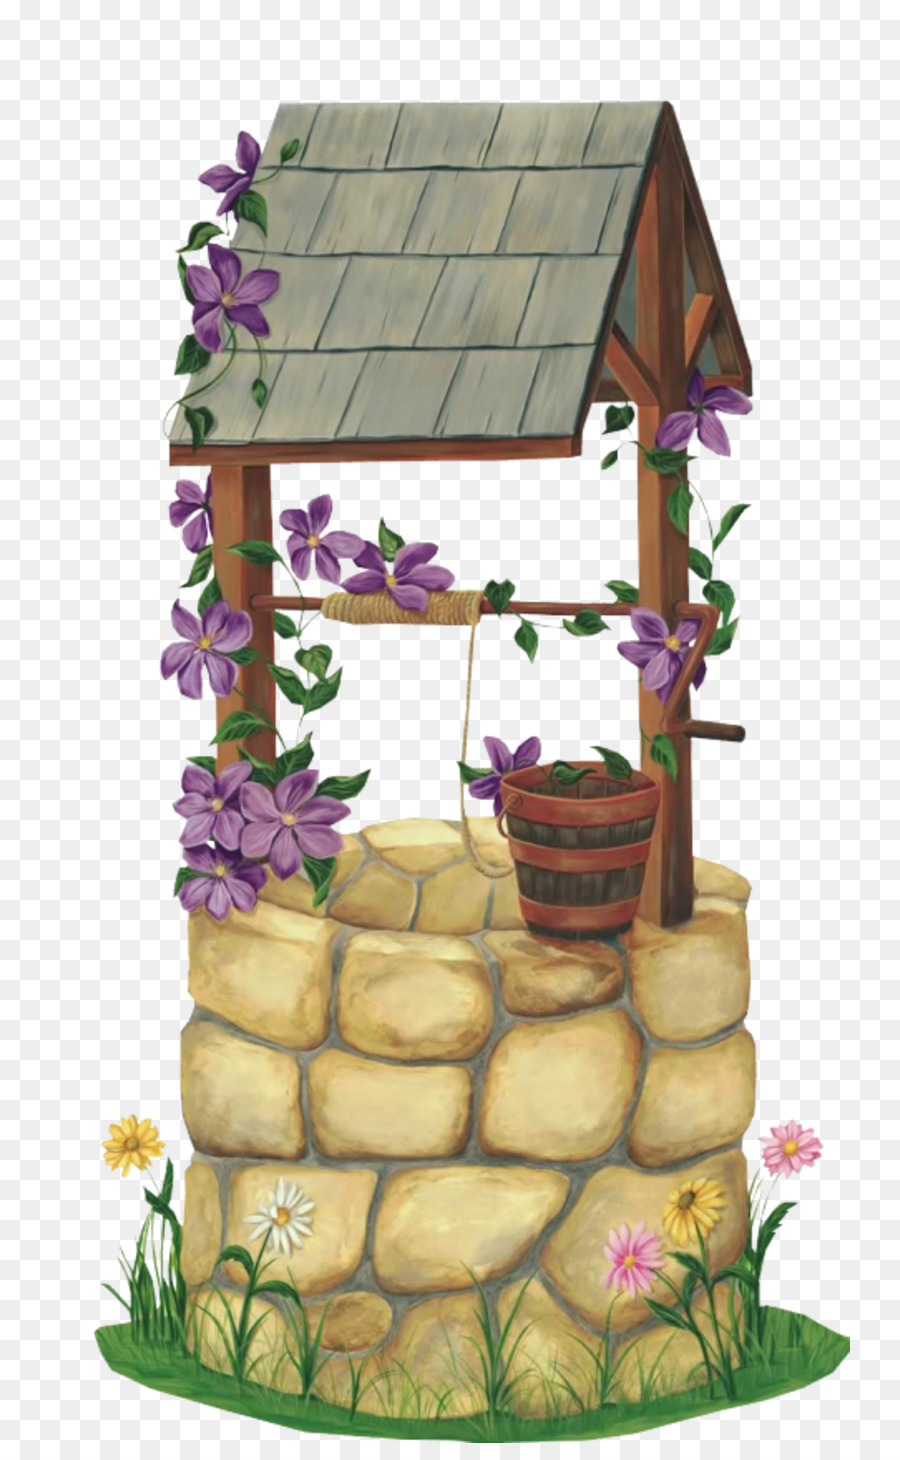 Wishing well clipart 7 » Clipart Station.